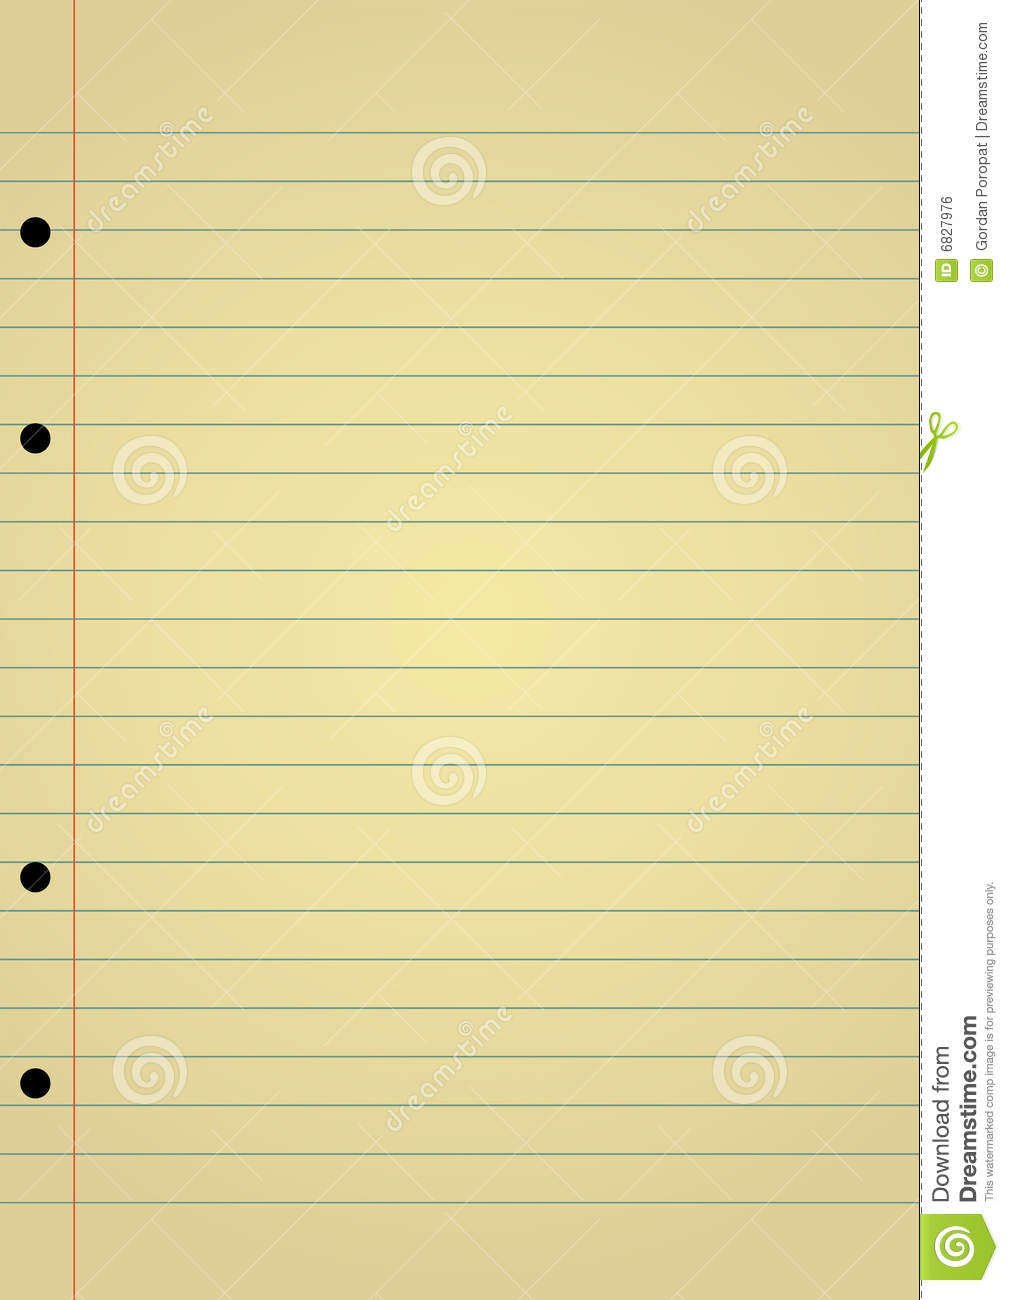 Notebook Paper Royalty Free Image Image 6827976 – Yellow Notebook Paper Background